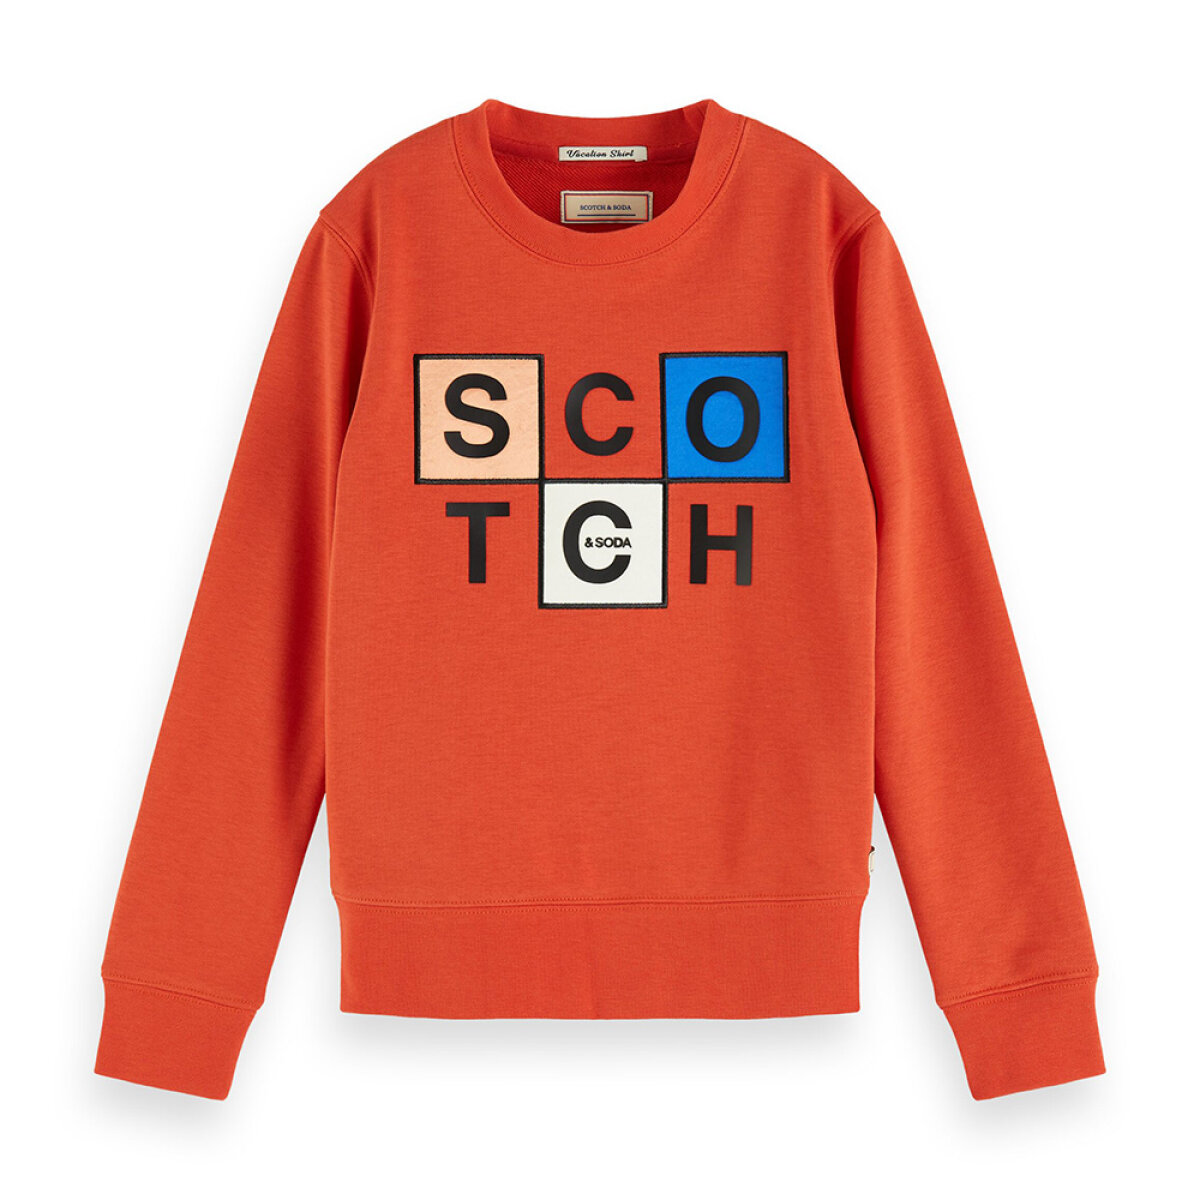 Scotch & Soda jongens sweater 154806 oranje